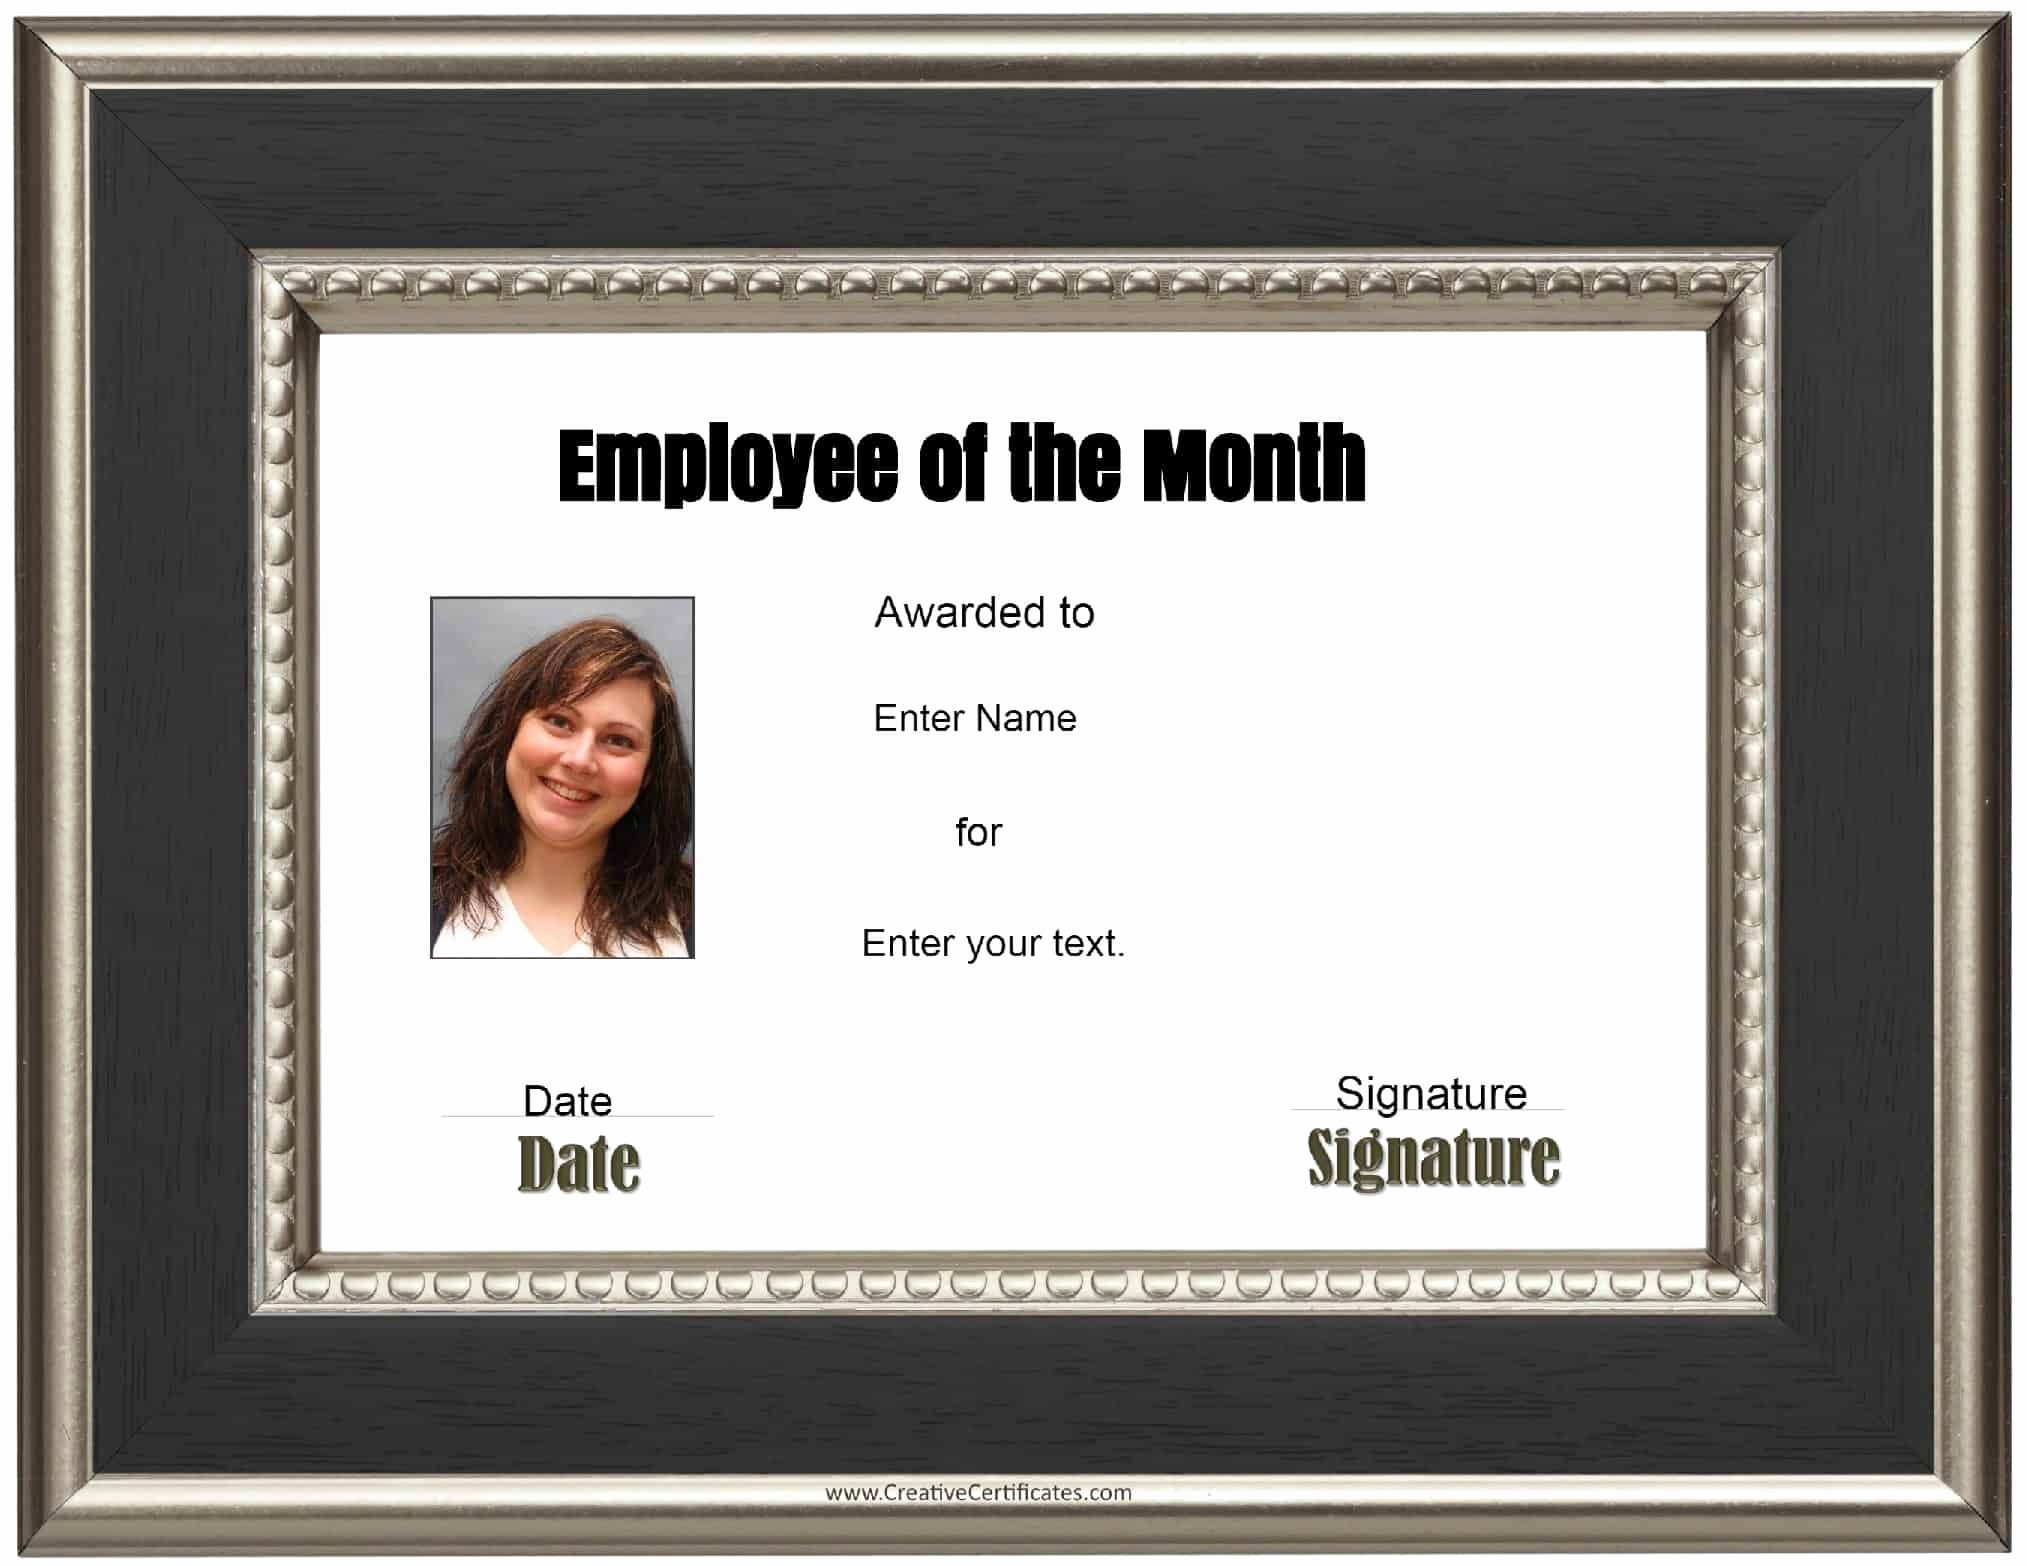 Employee Of the Month Sample Luxury Free Custom Employee Of the Month Certificate